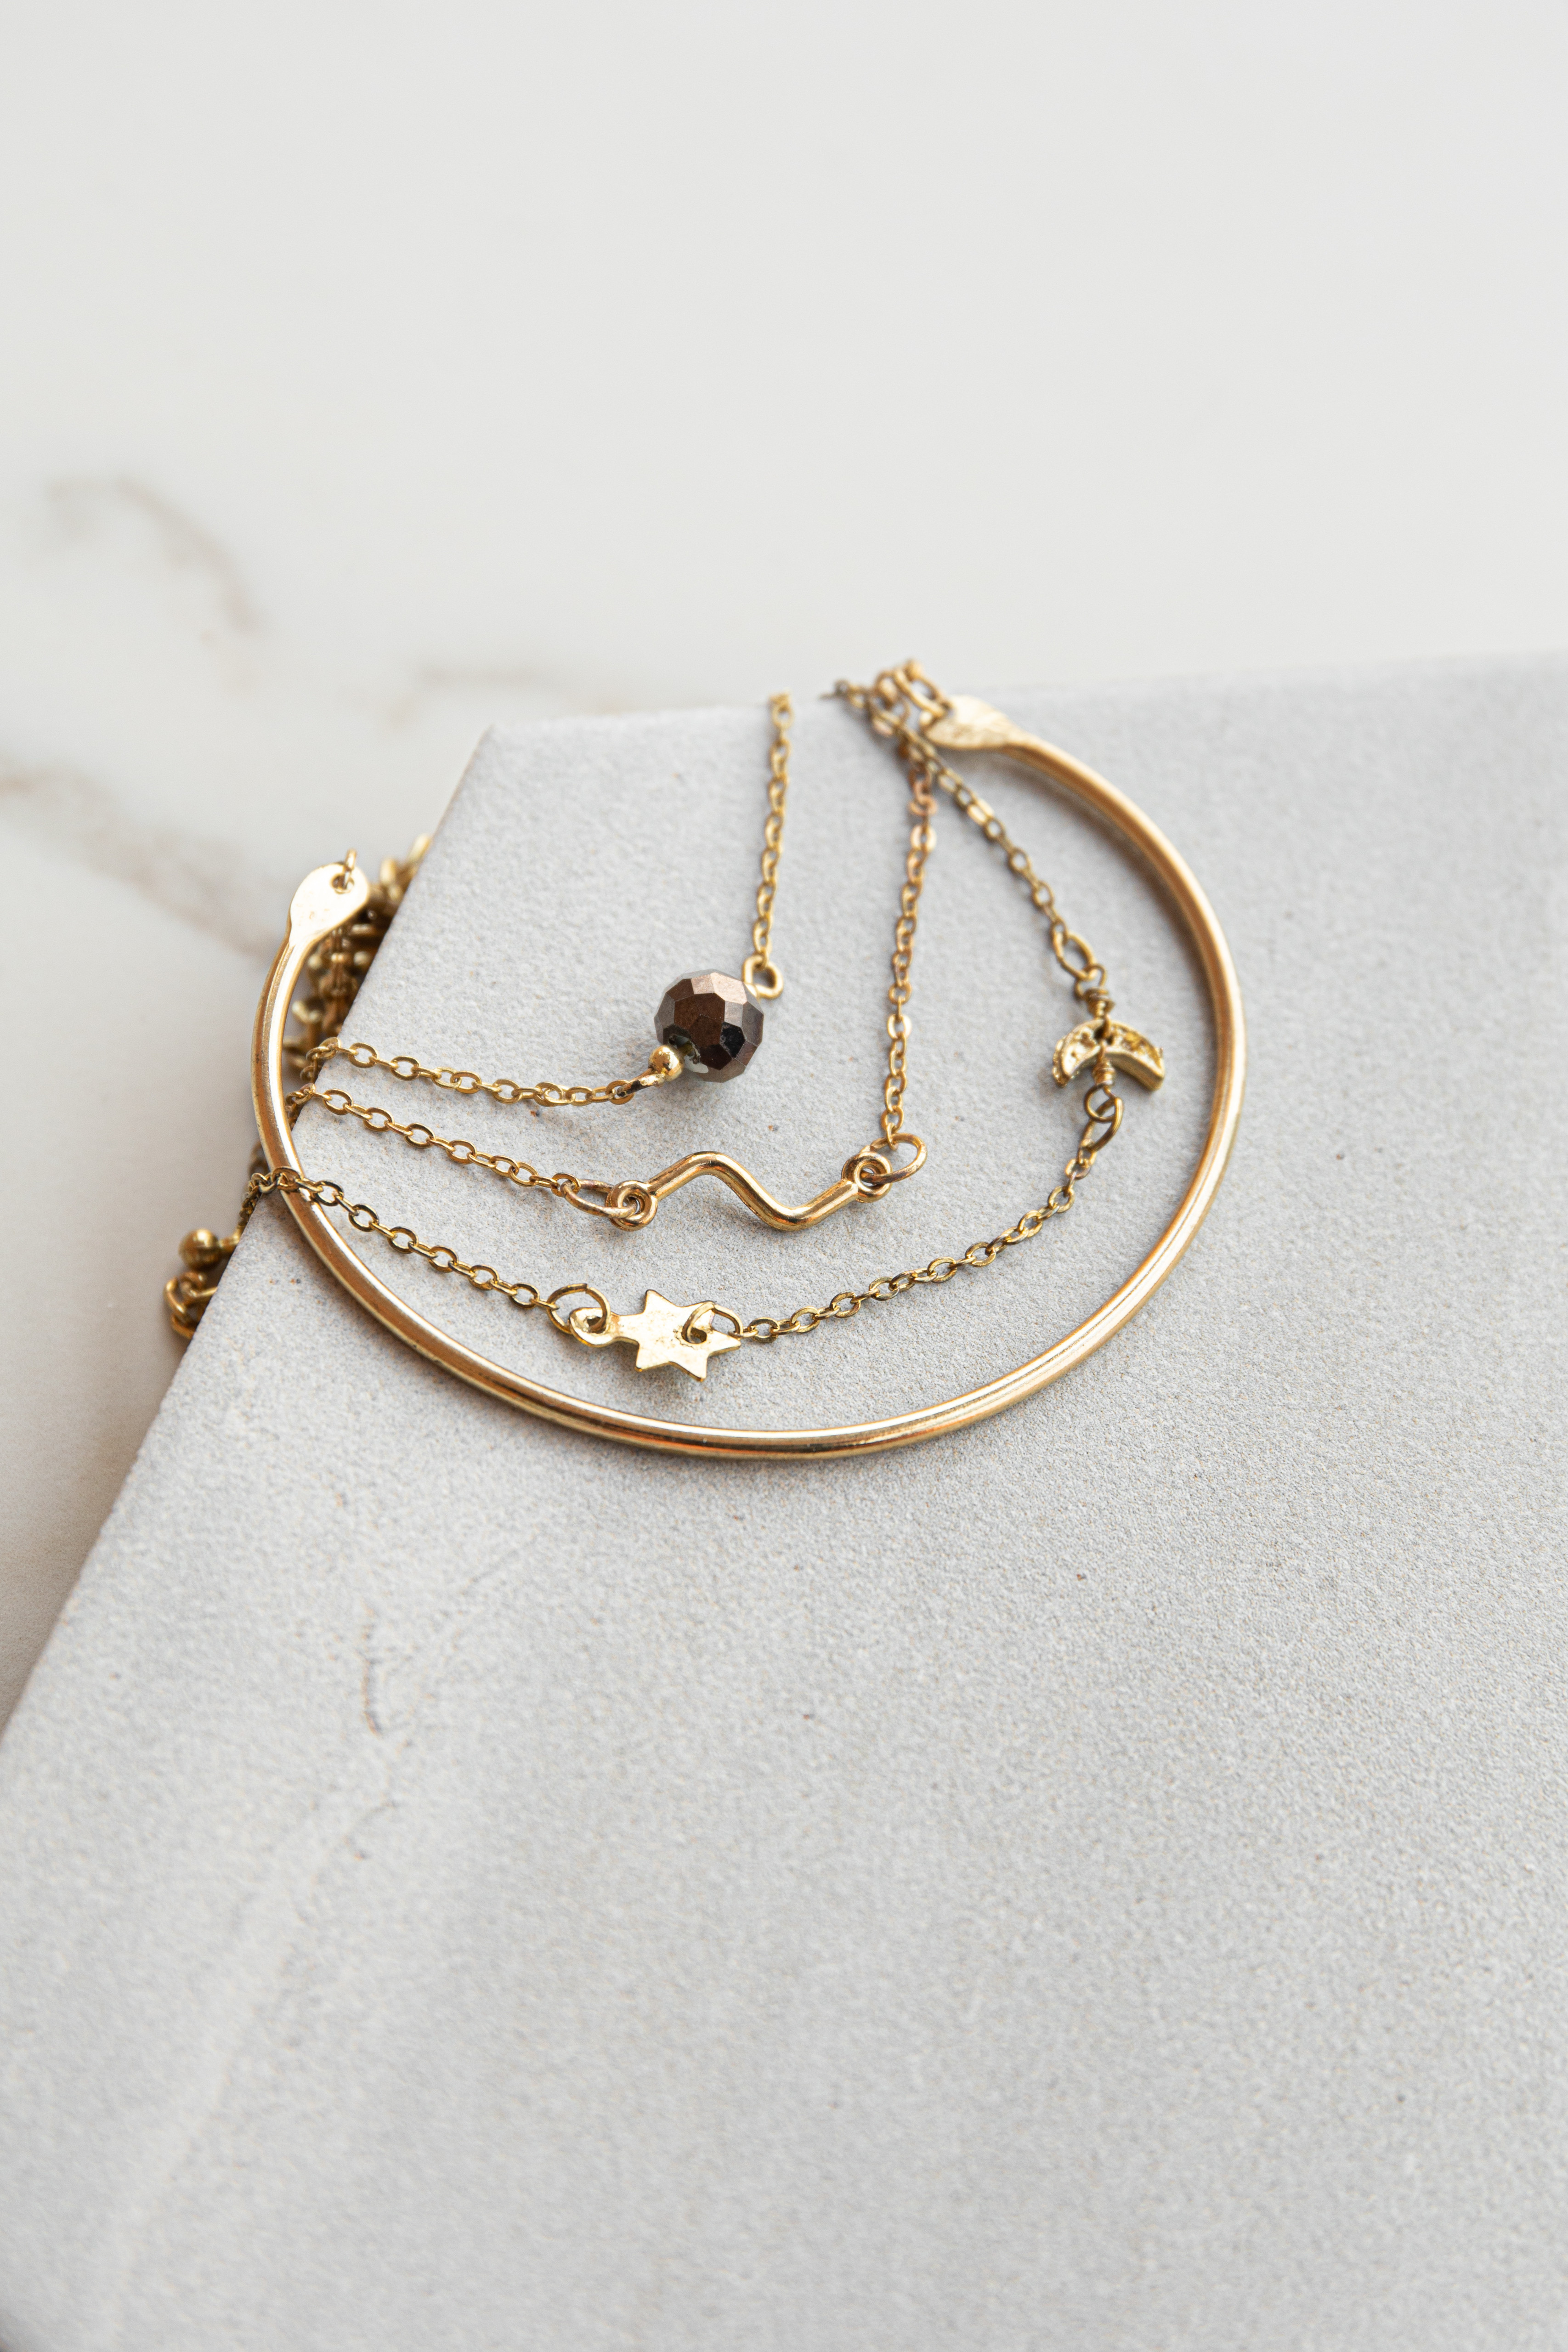 Gold Bracelet Set with Cuff and Tiny Charm Details